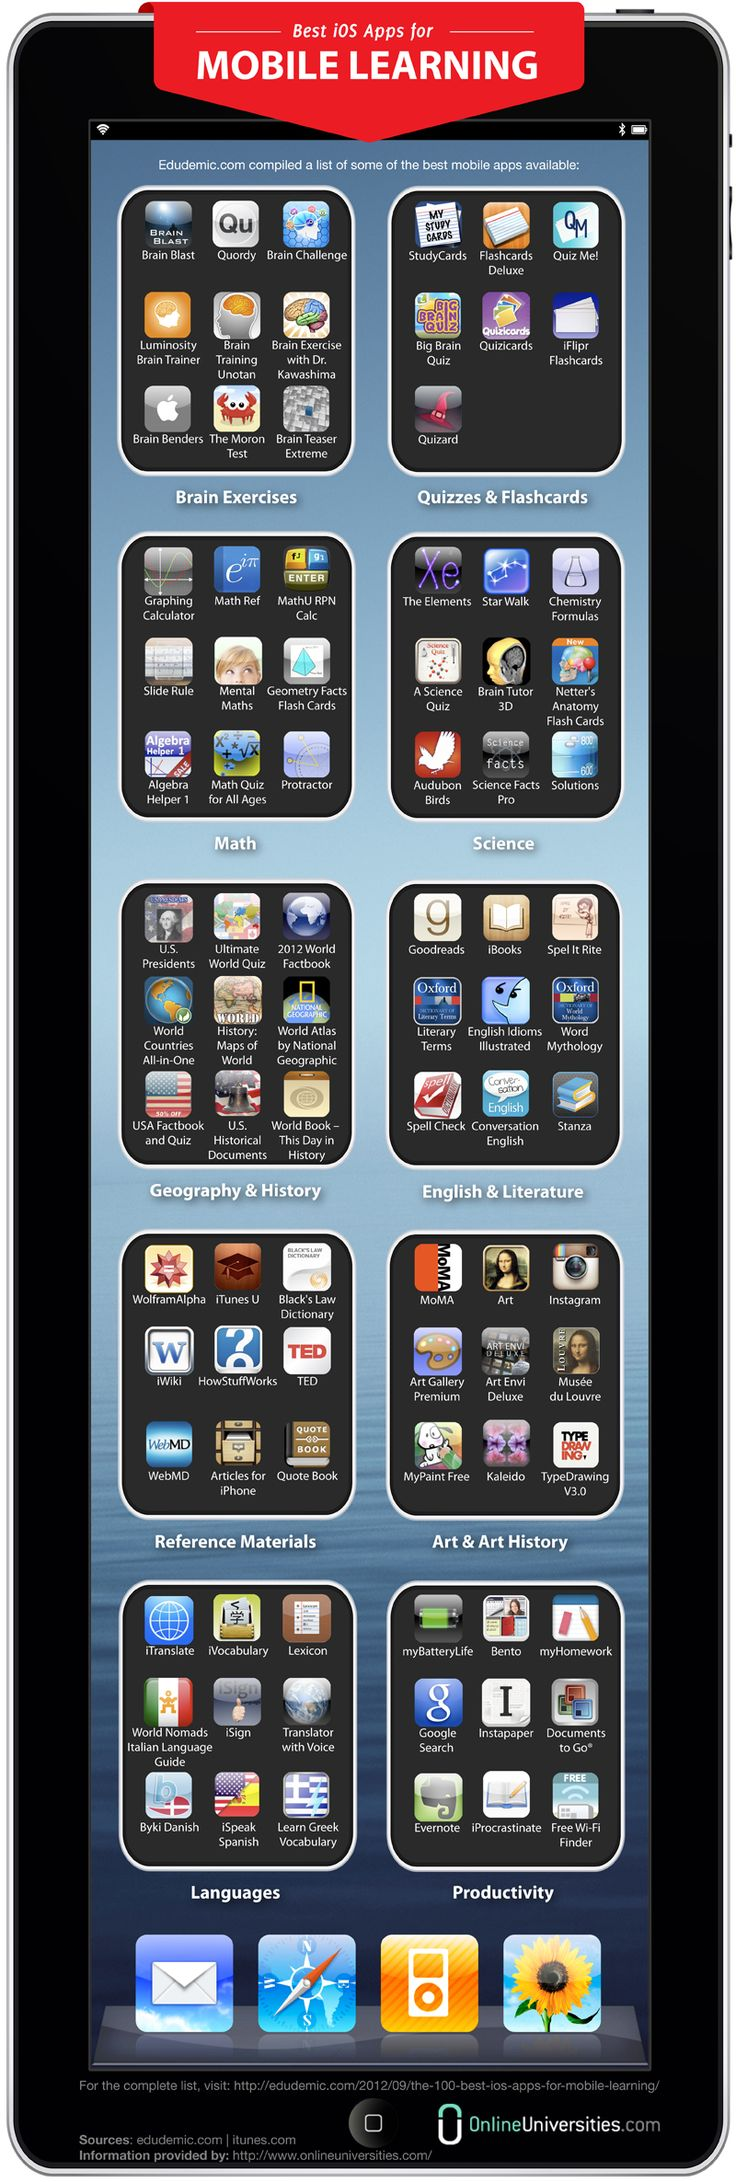 Best iOS Apps For Mobile Learning, Nov 21, 2012  - http://www.makeuseof.com/tag/infographic-best-ios-apps-for-mobile-learning/ #infographic